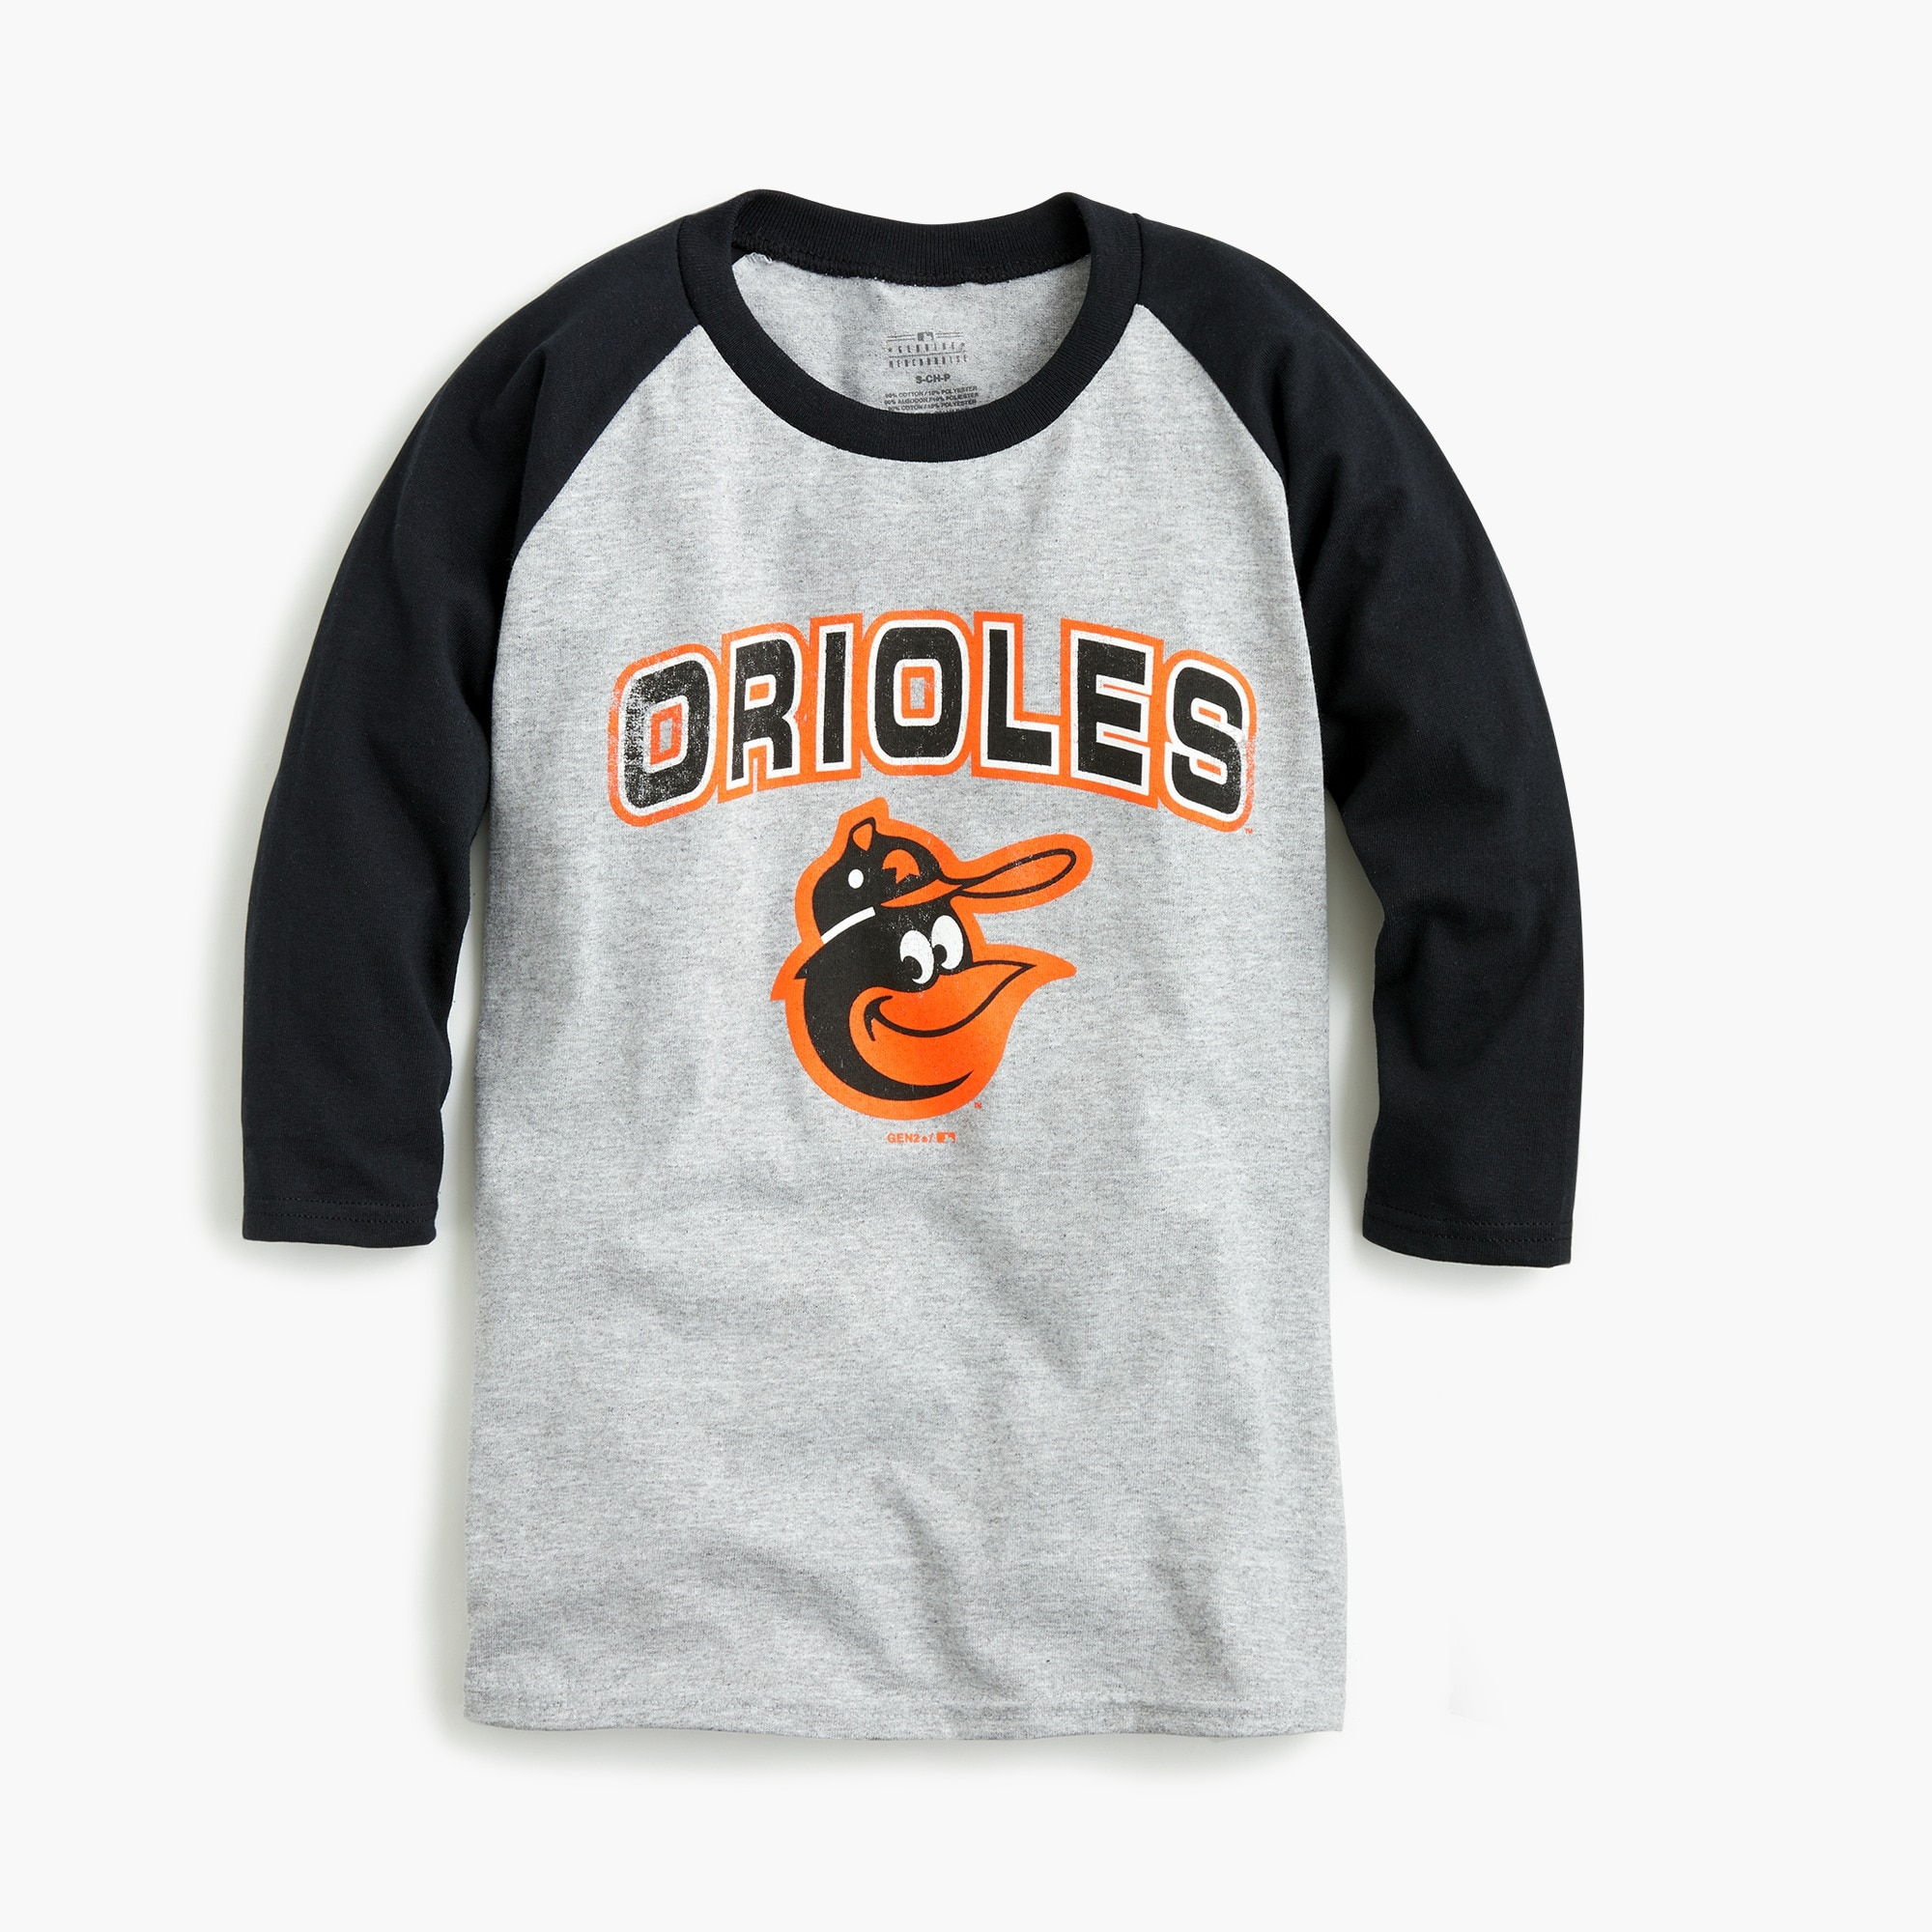 boys Kids' Baltimore Orioles baseball T-shirt